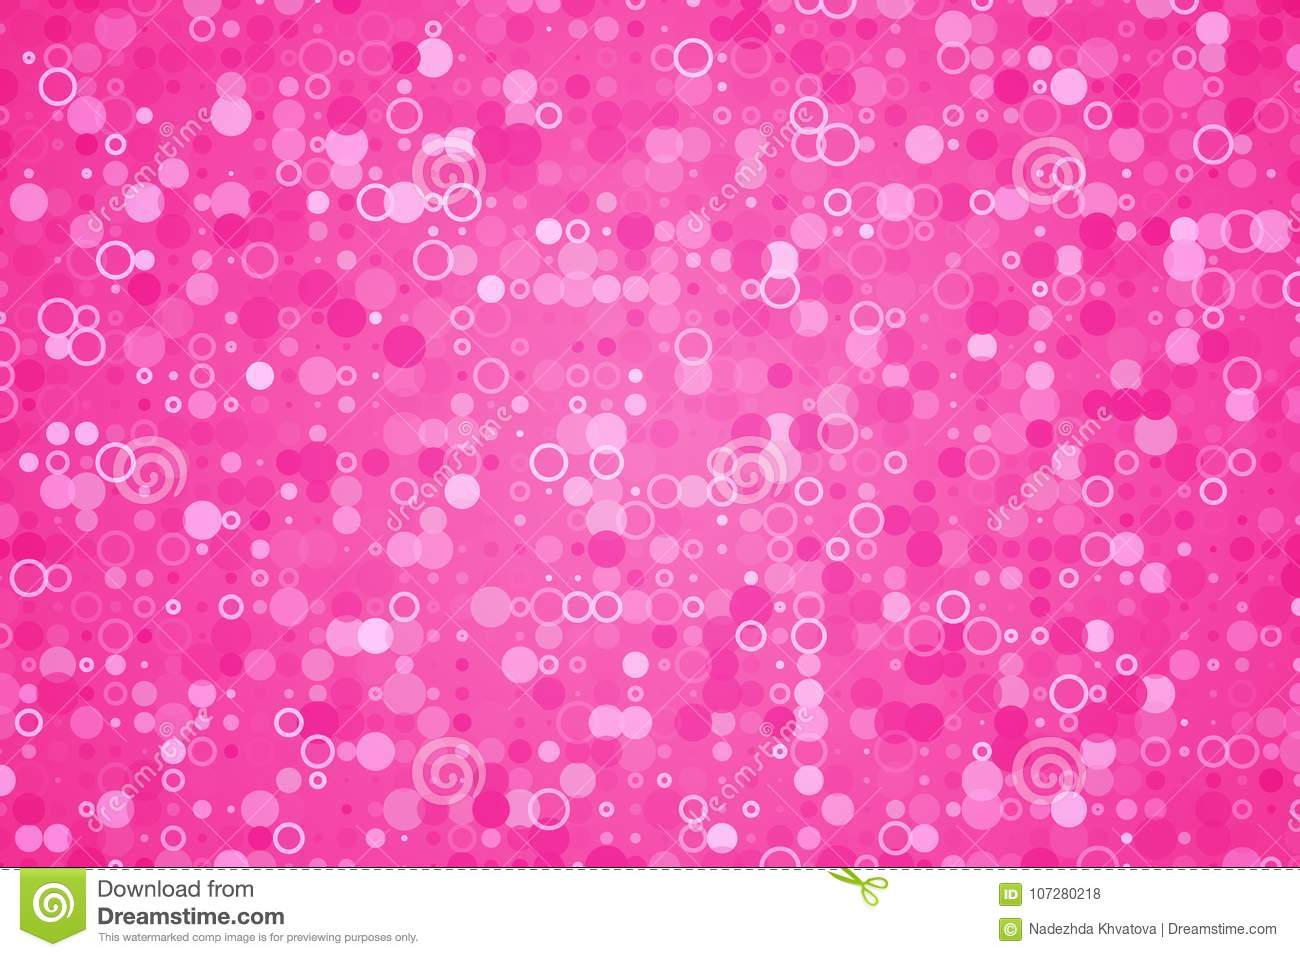 Pink Pattern With Glitter Effect Cute Background Stock Vector Illustration Of Magenta Graphic 107280218